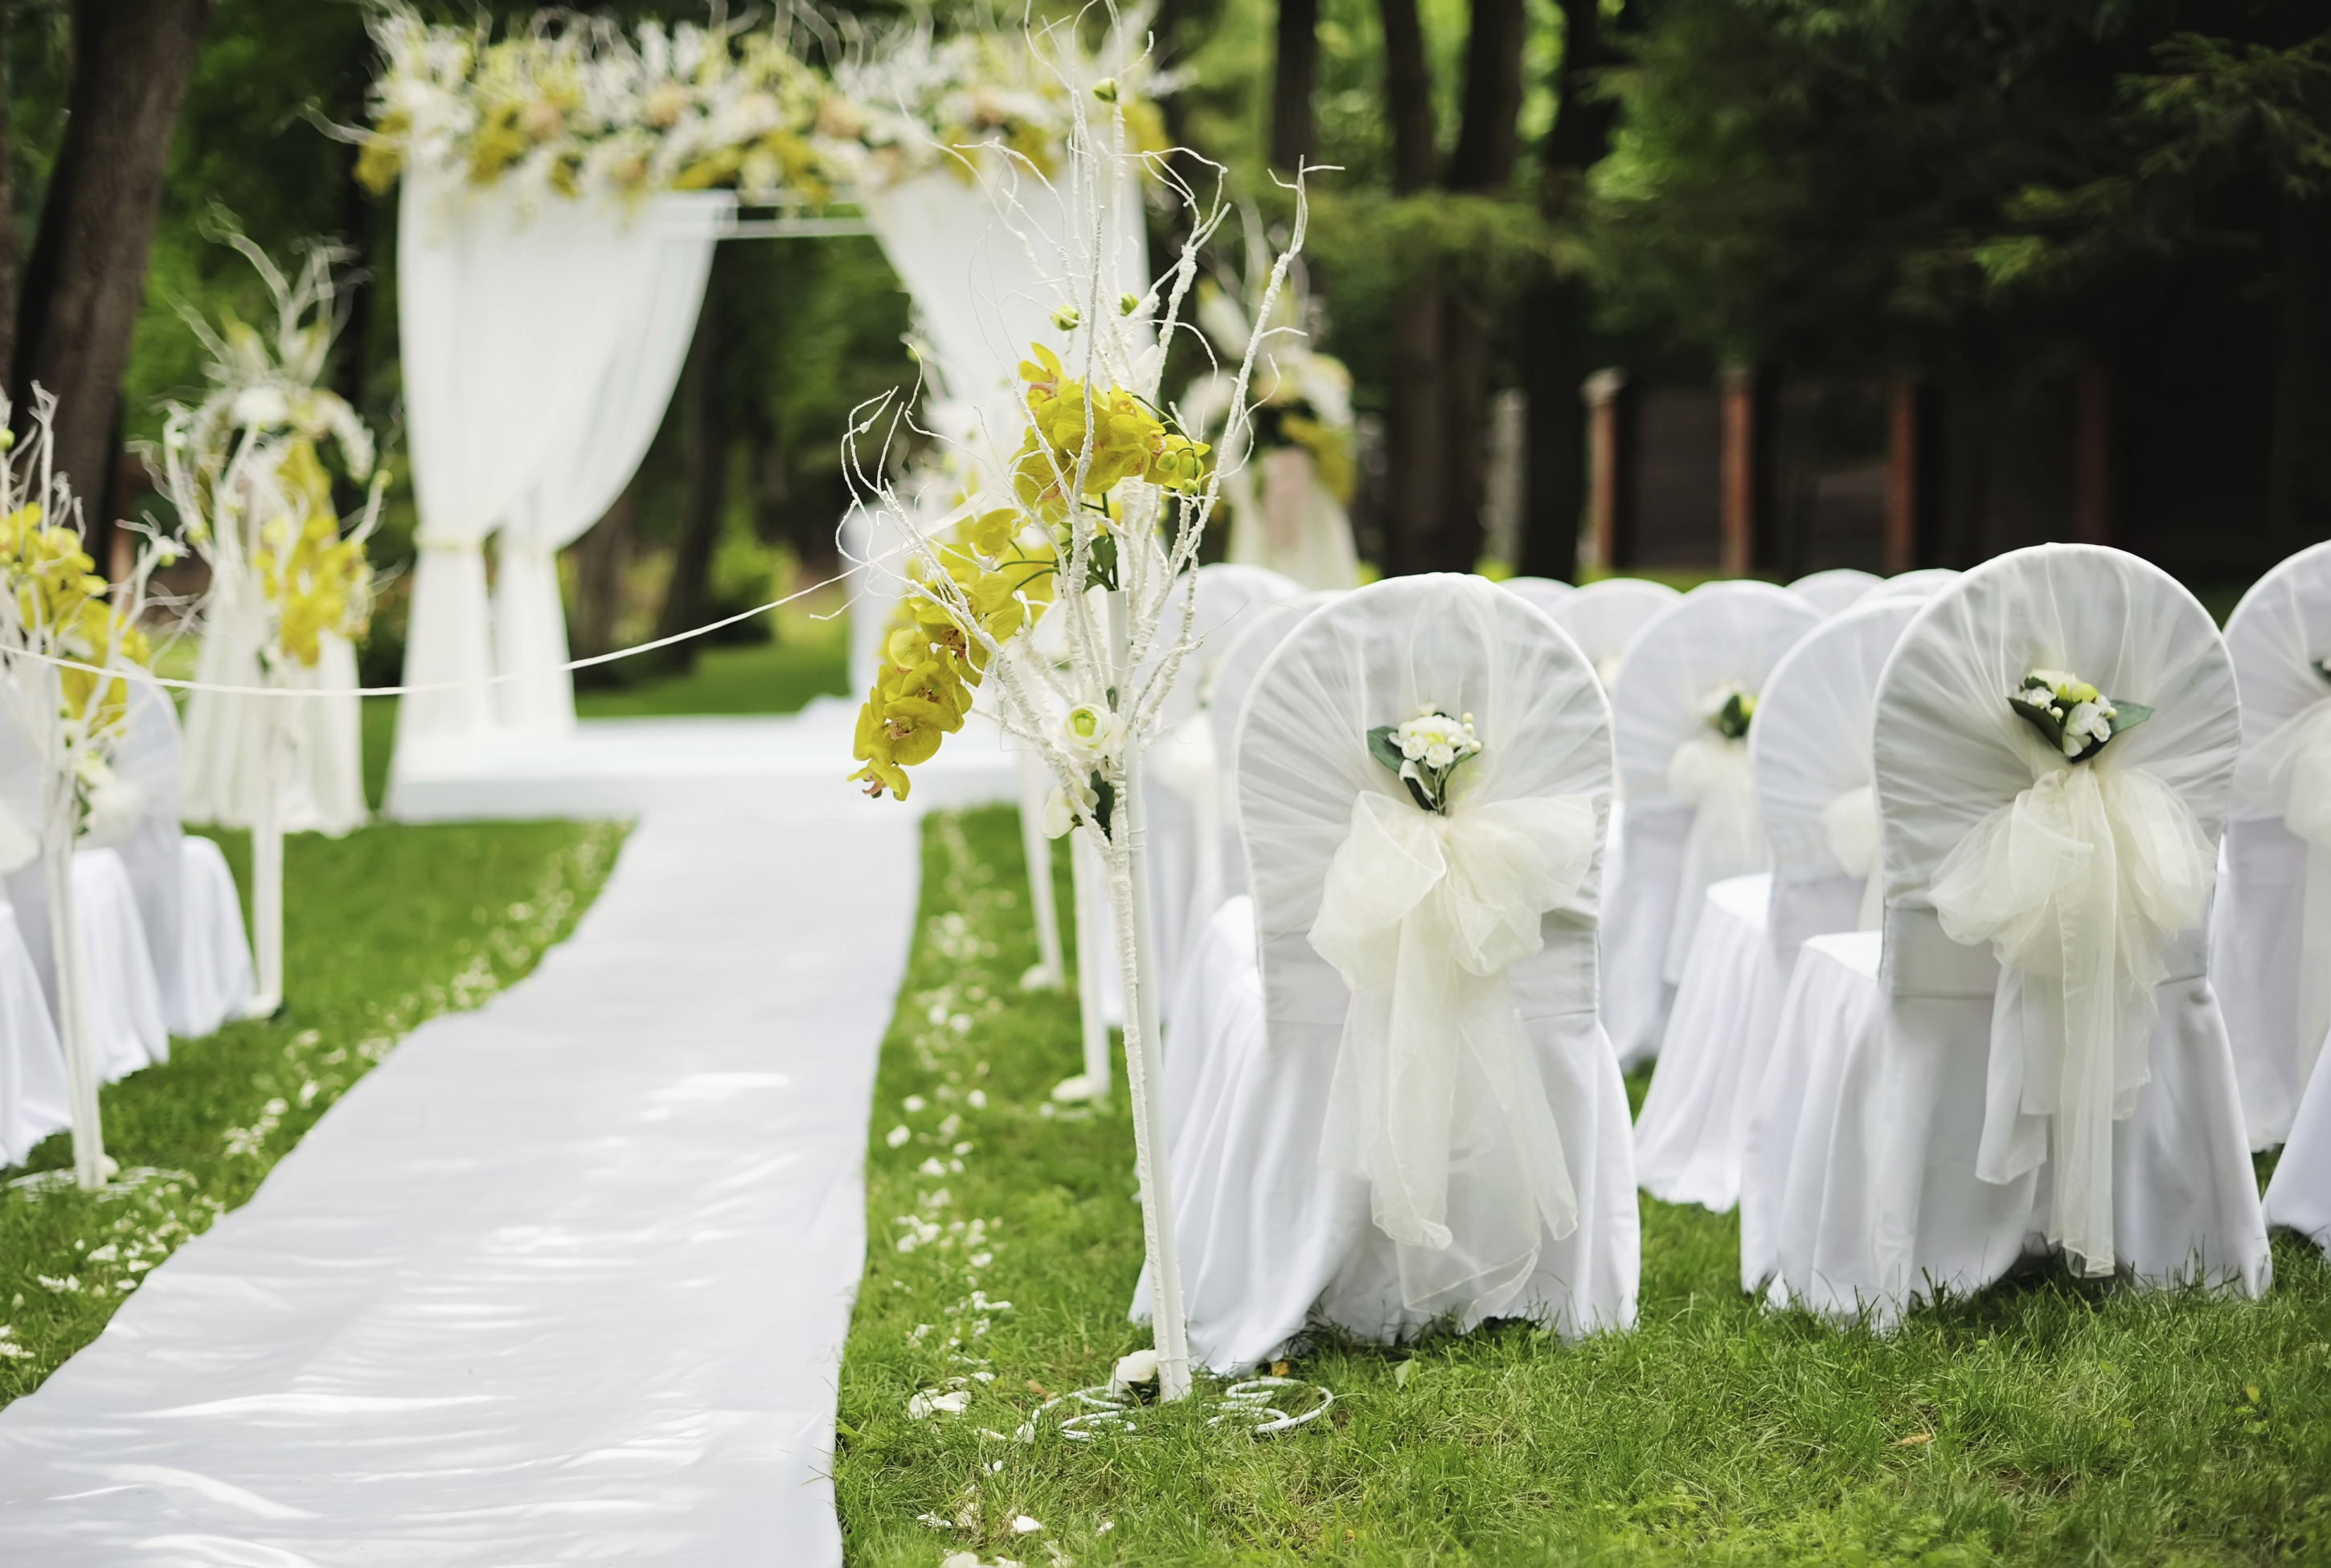 Why You Need Wedding Chair Covers